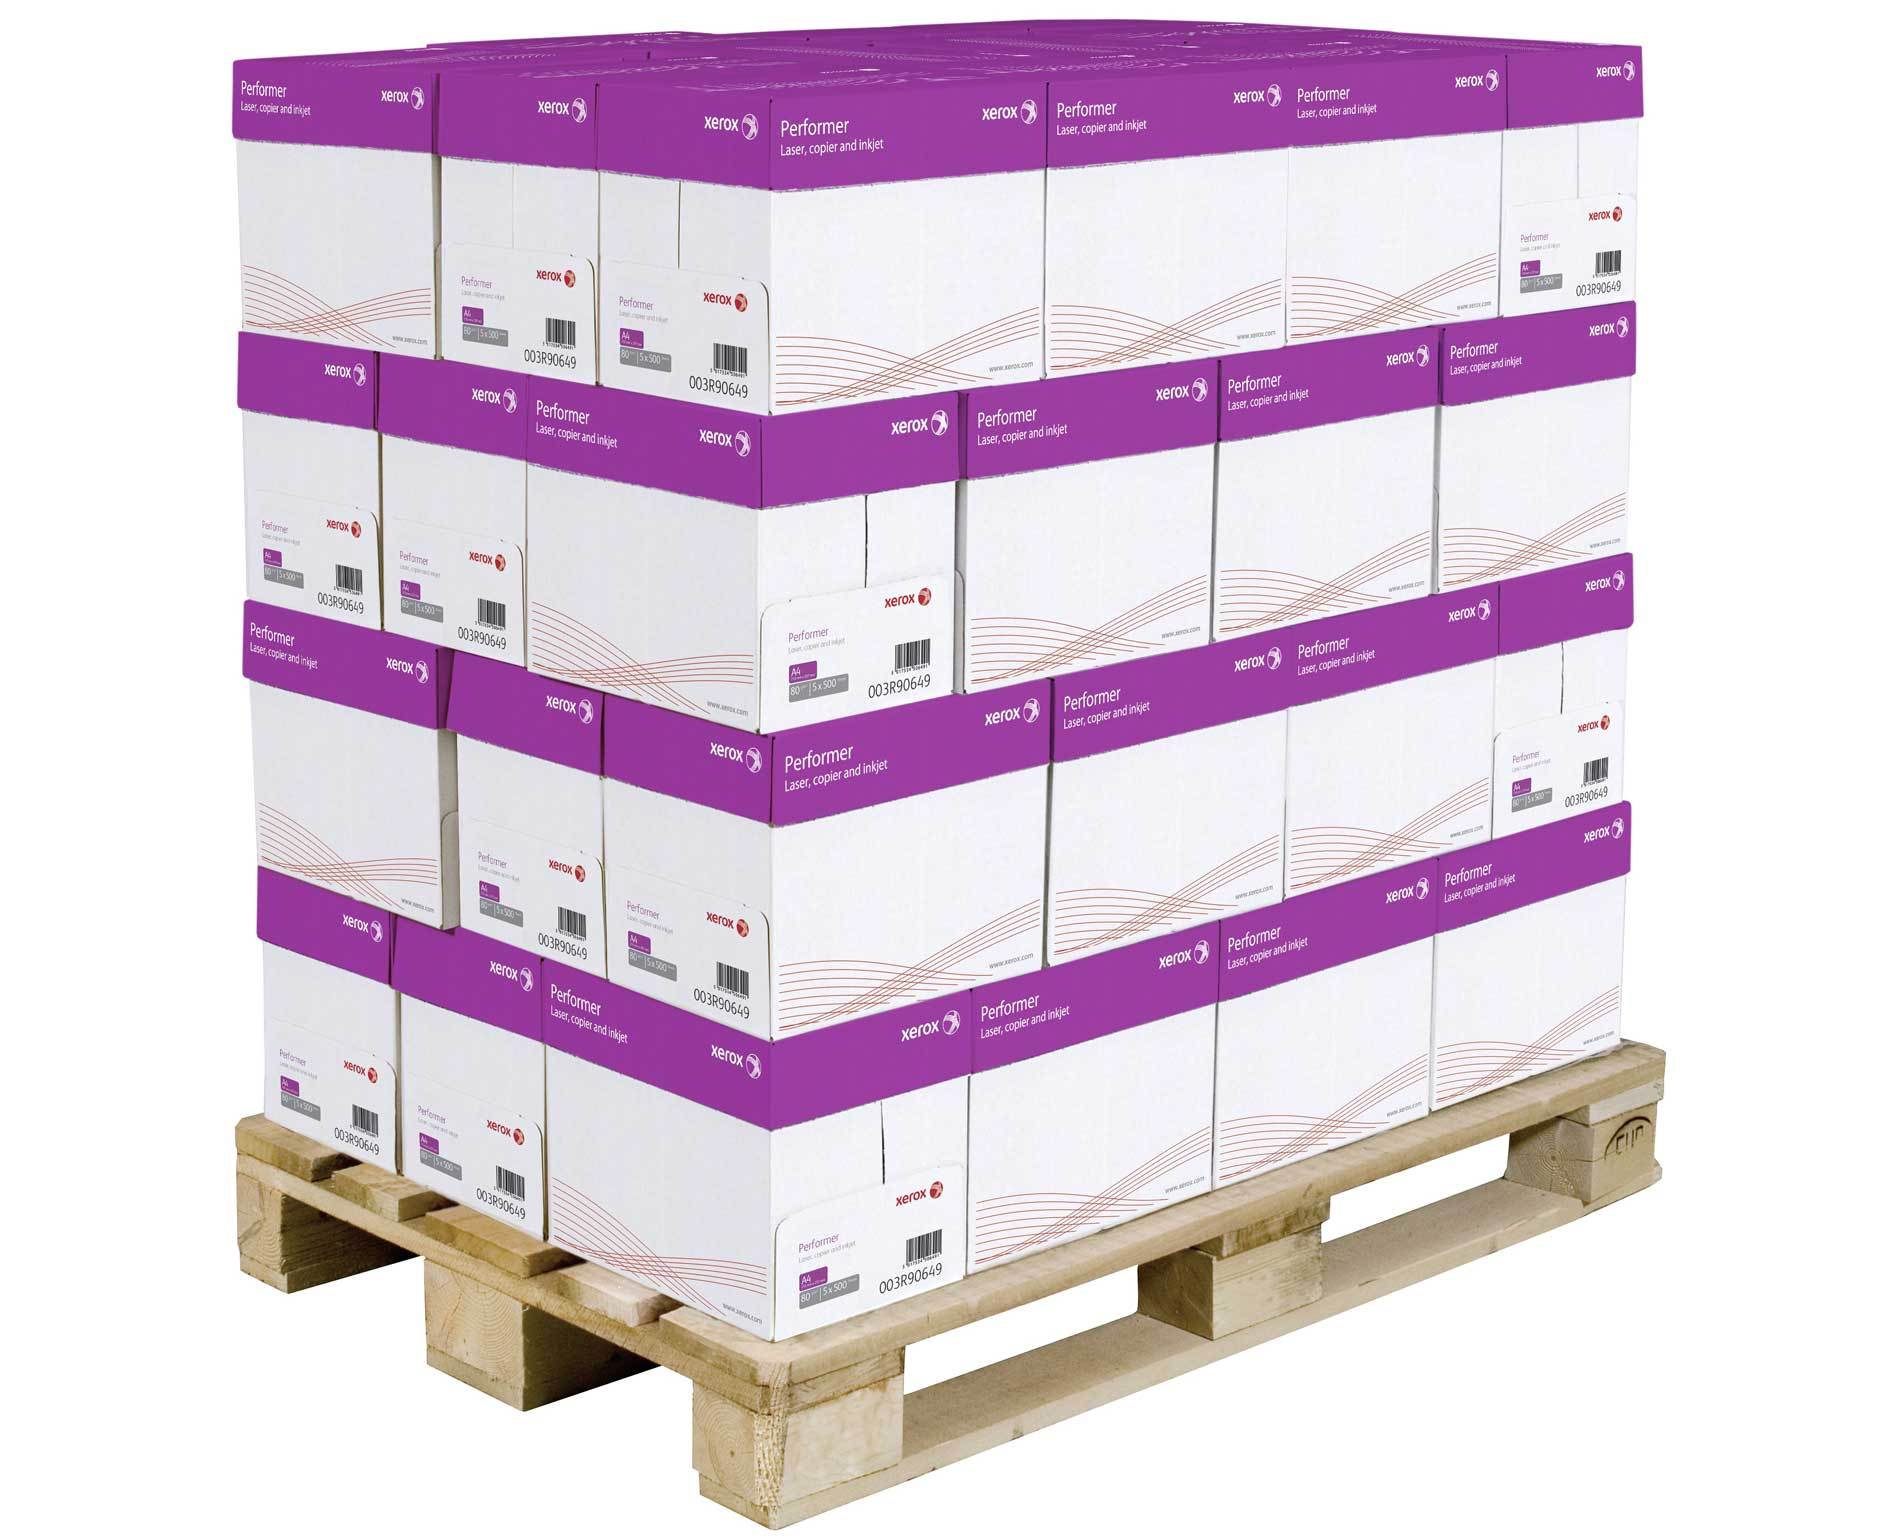 Image of reams of paper on a pallet